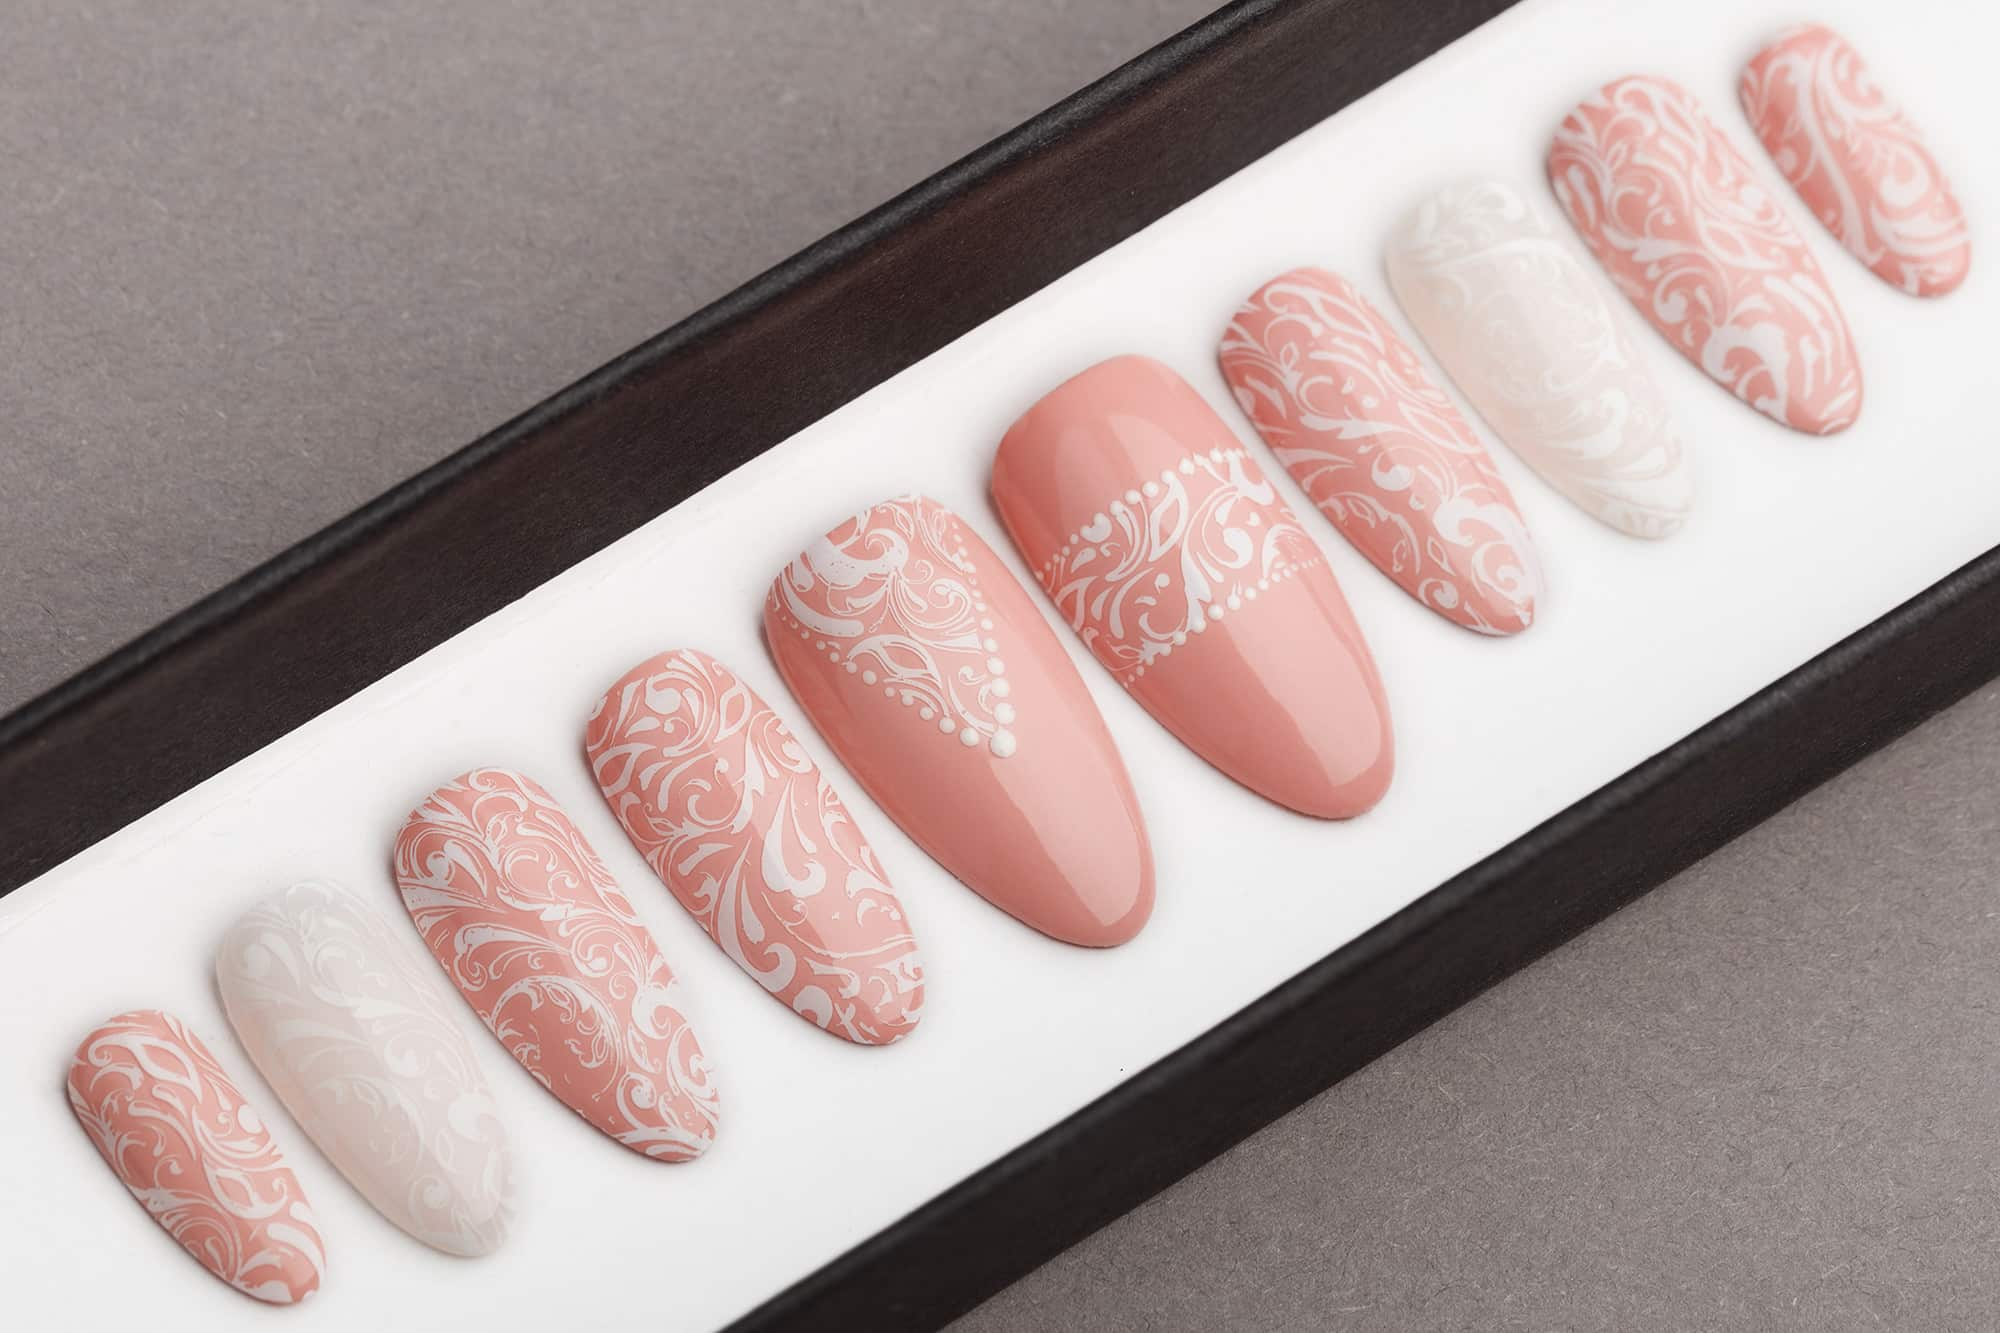 Lace Wedding Press on Nails